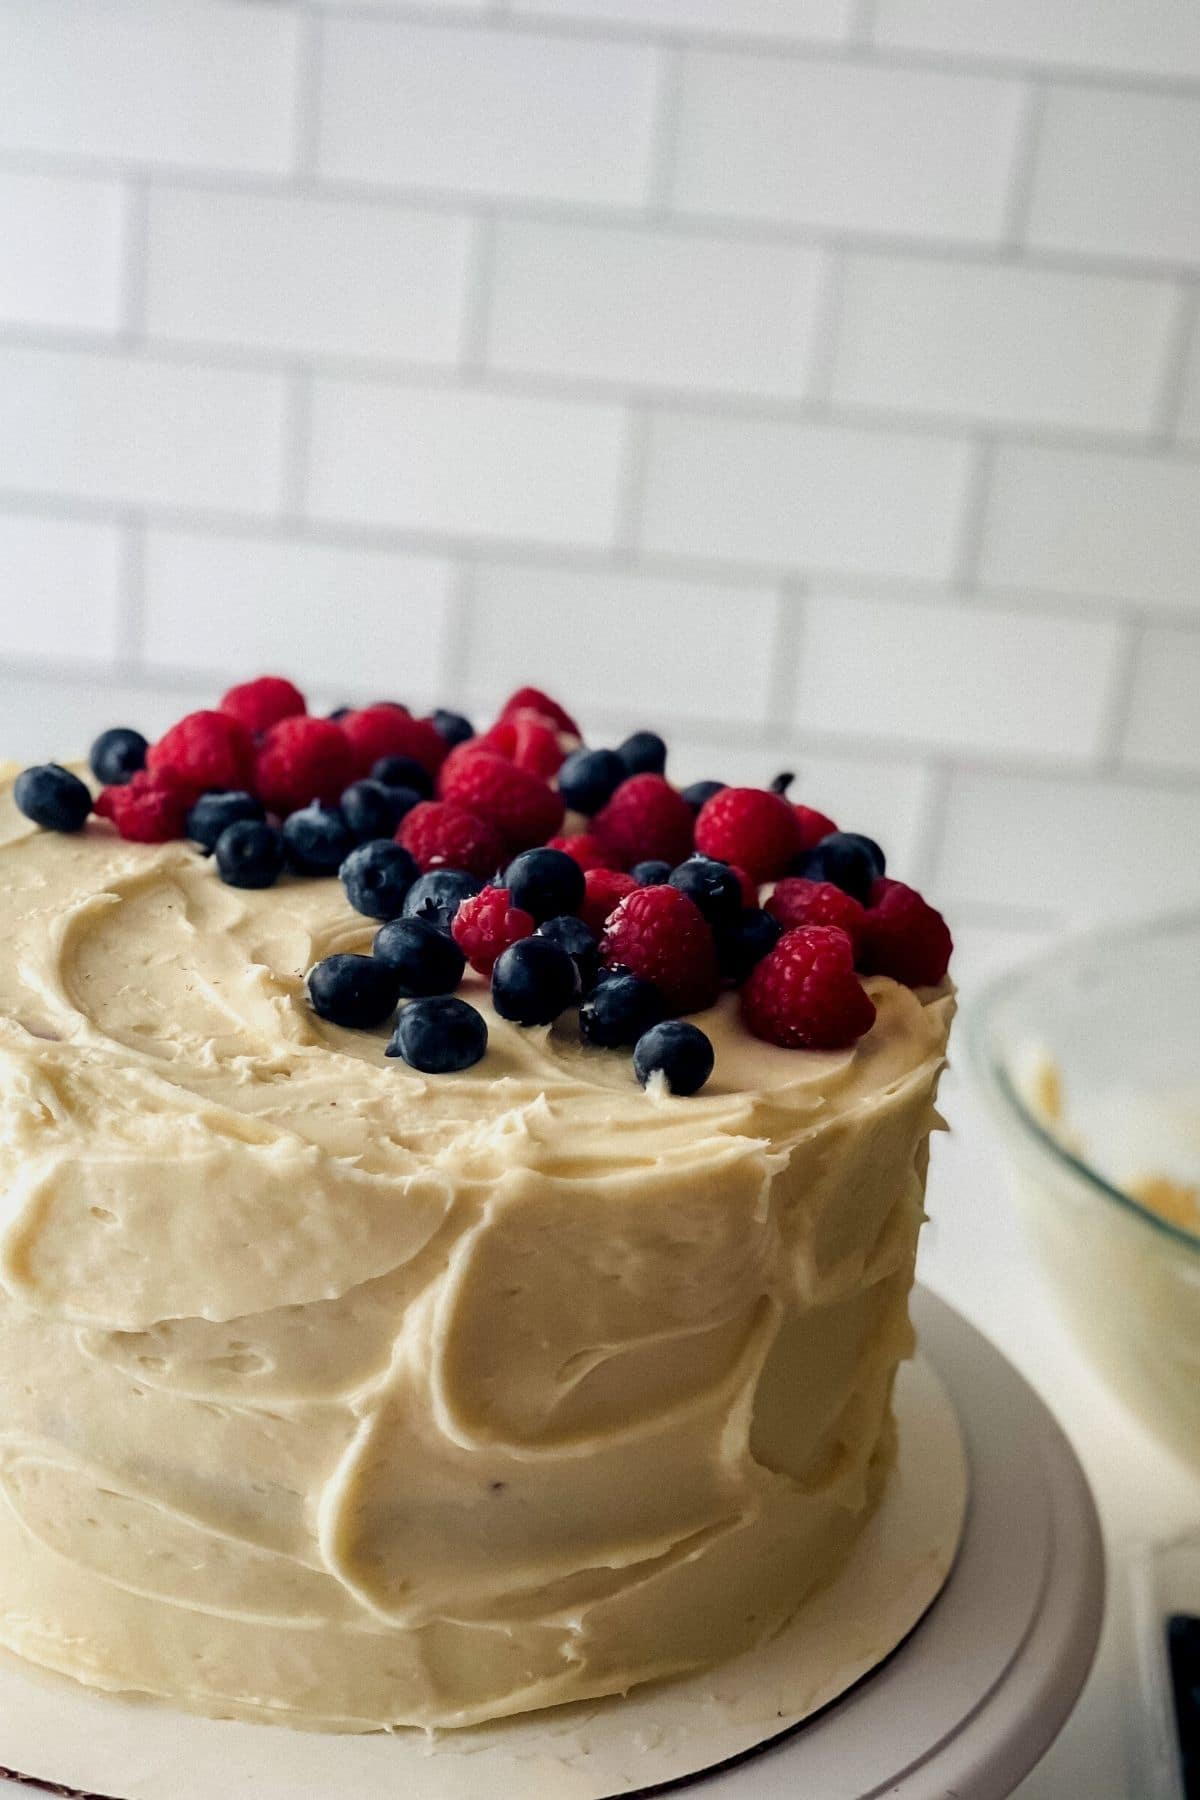 Cake with vanilla buttercream and fresh berries on top